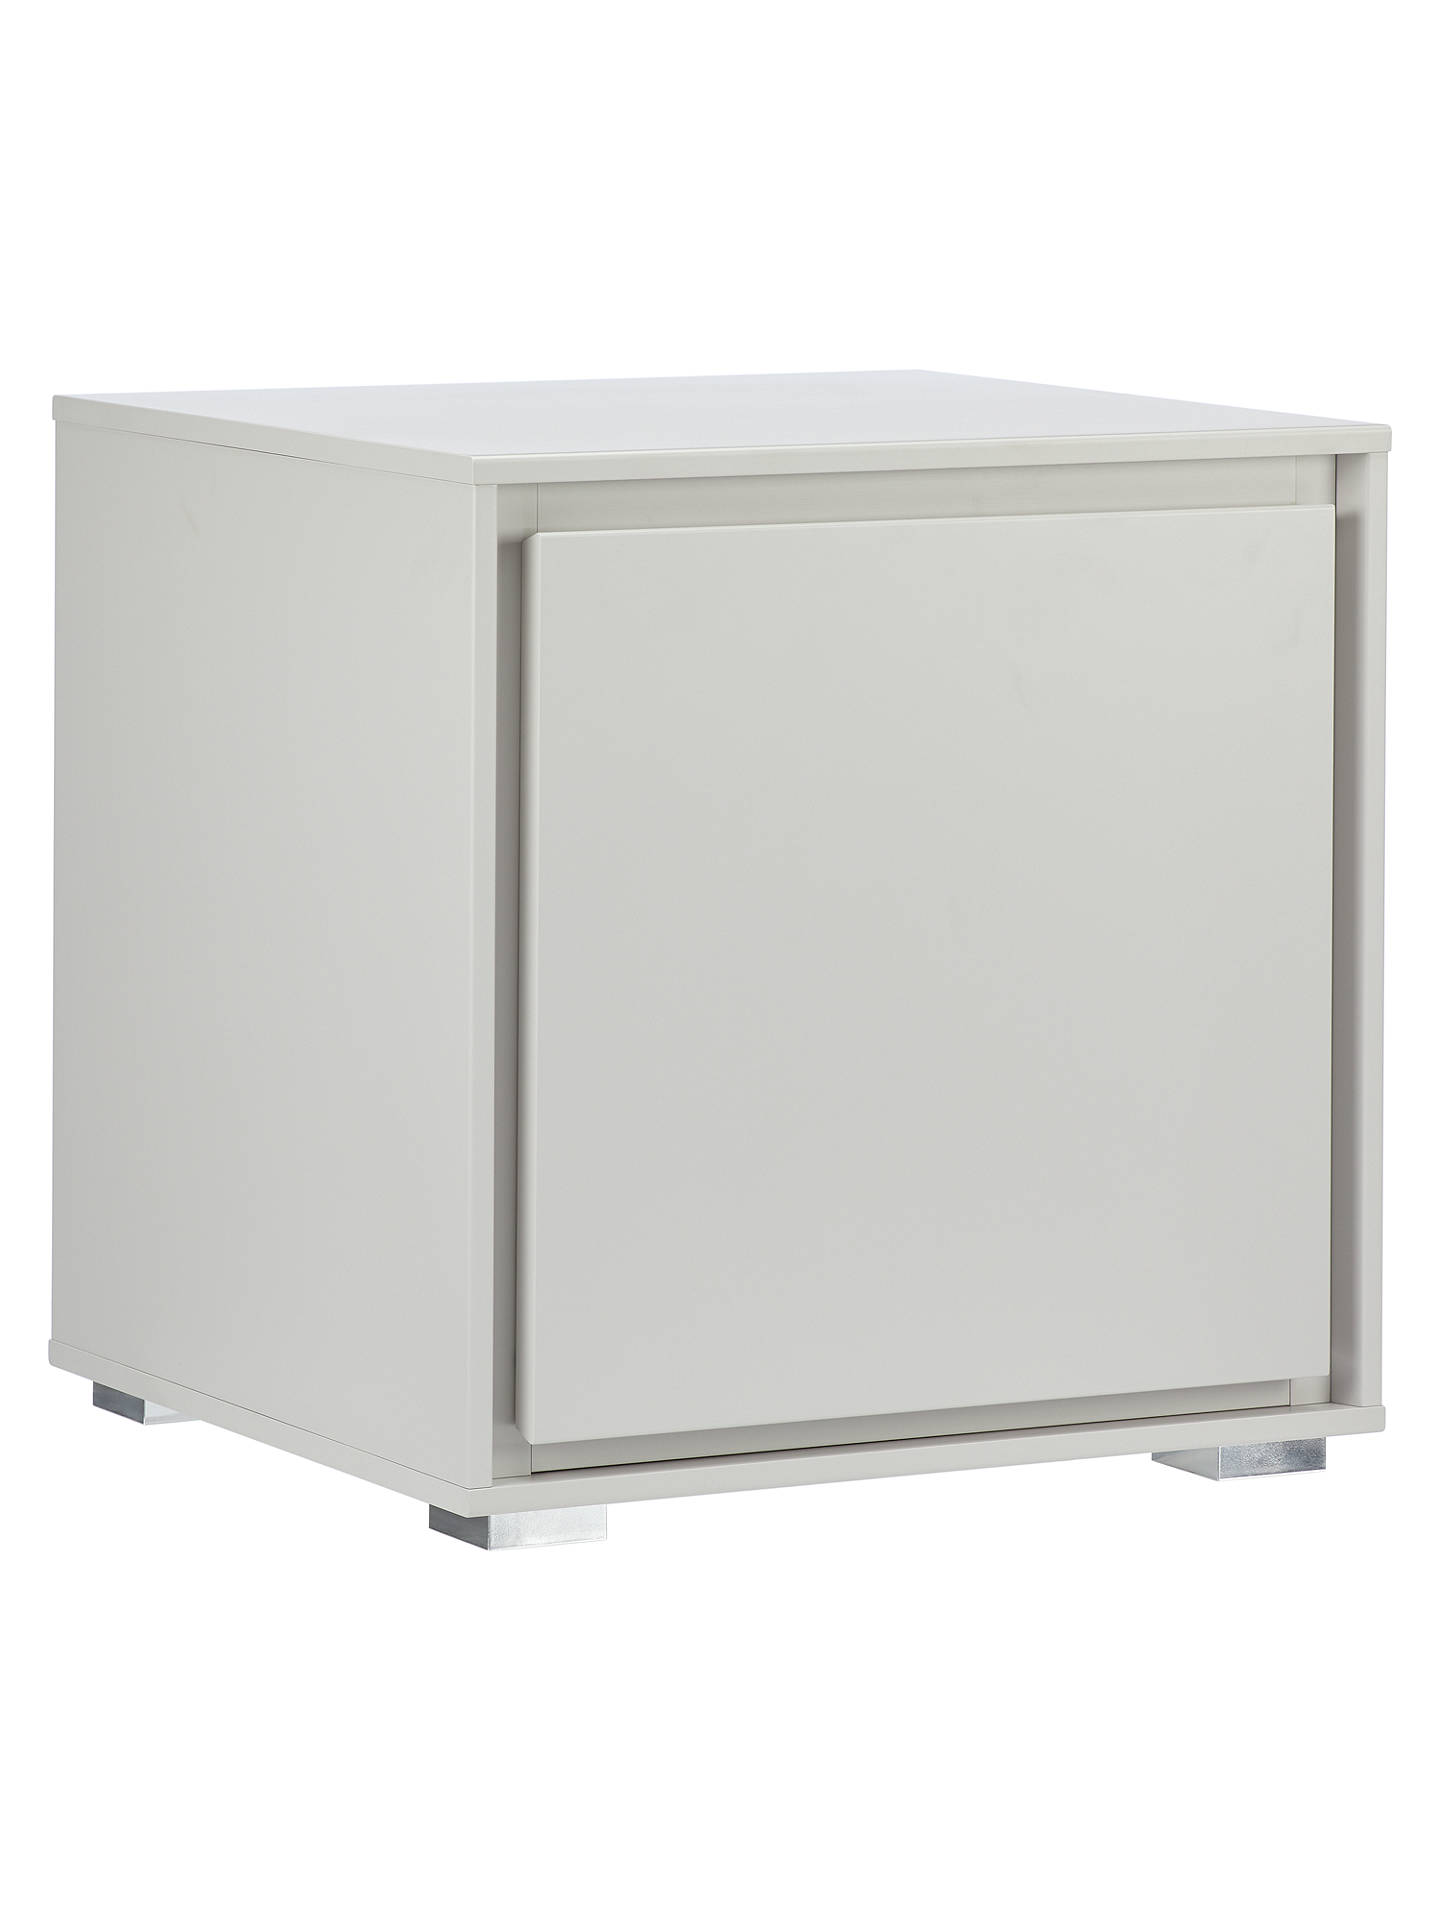 Two Drawer High Gloss Matt Bedside Cabinets Table Bedroom Hallway Storage Units